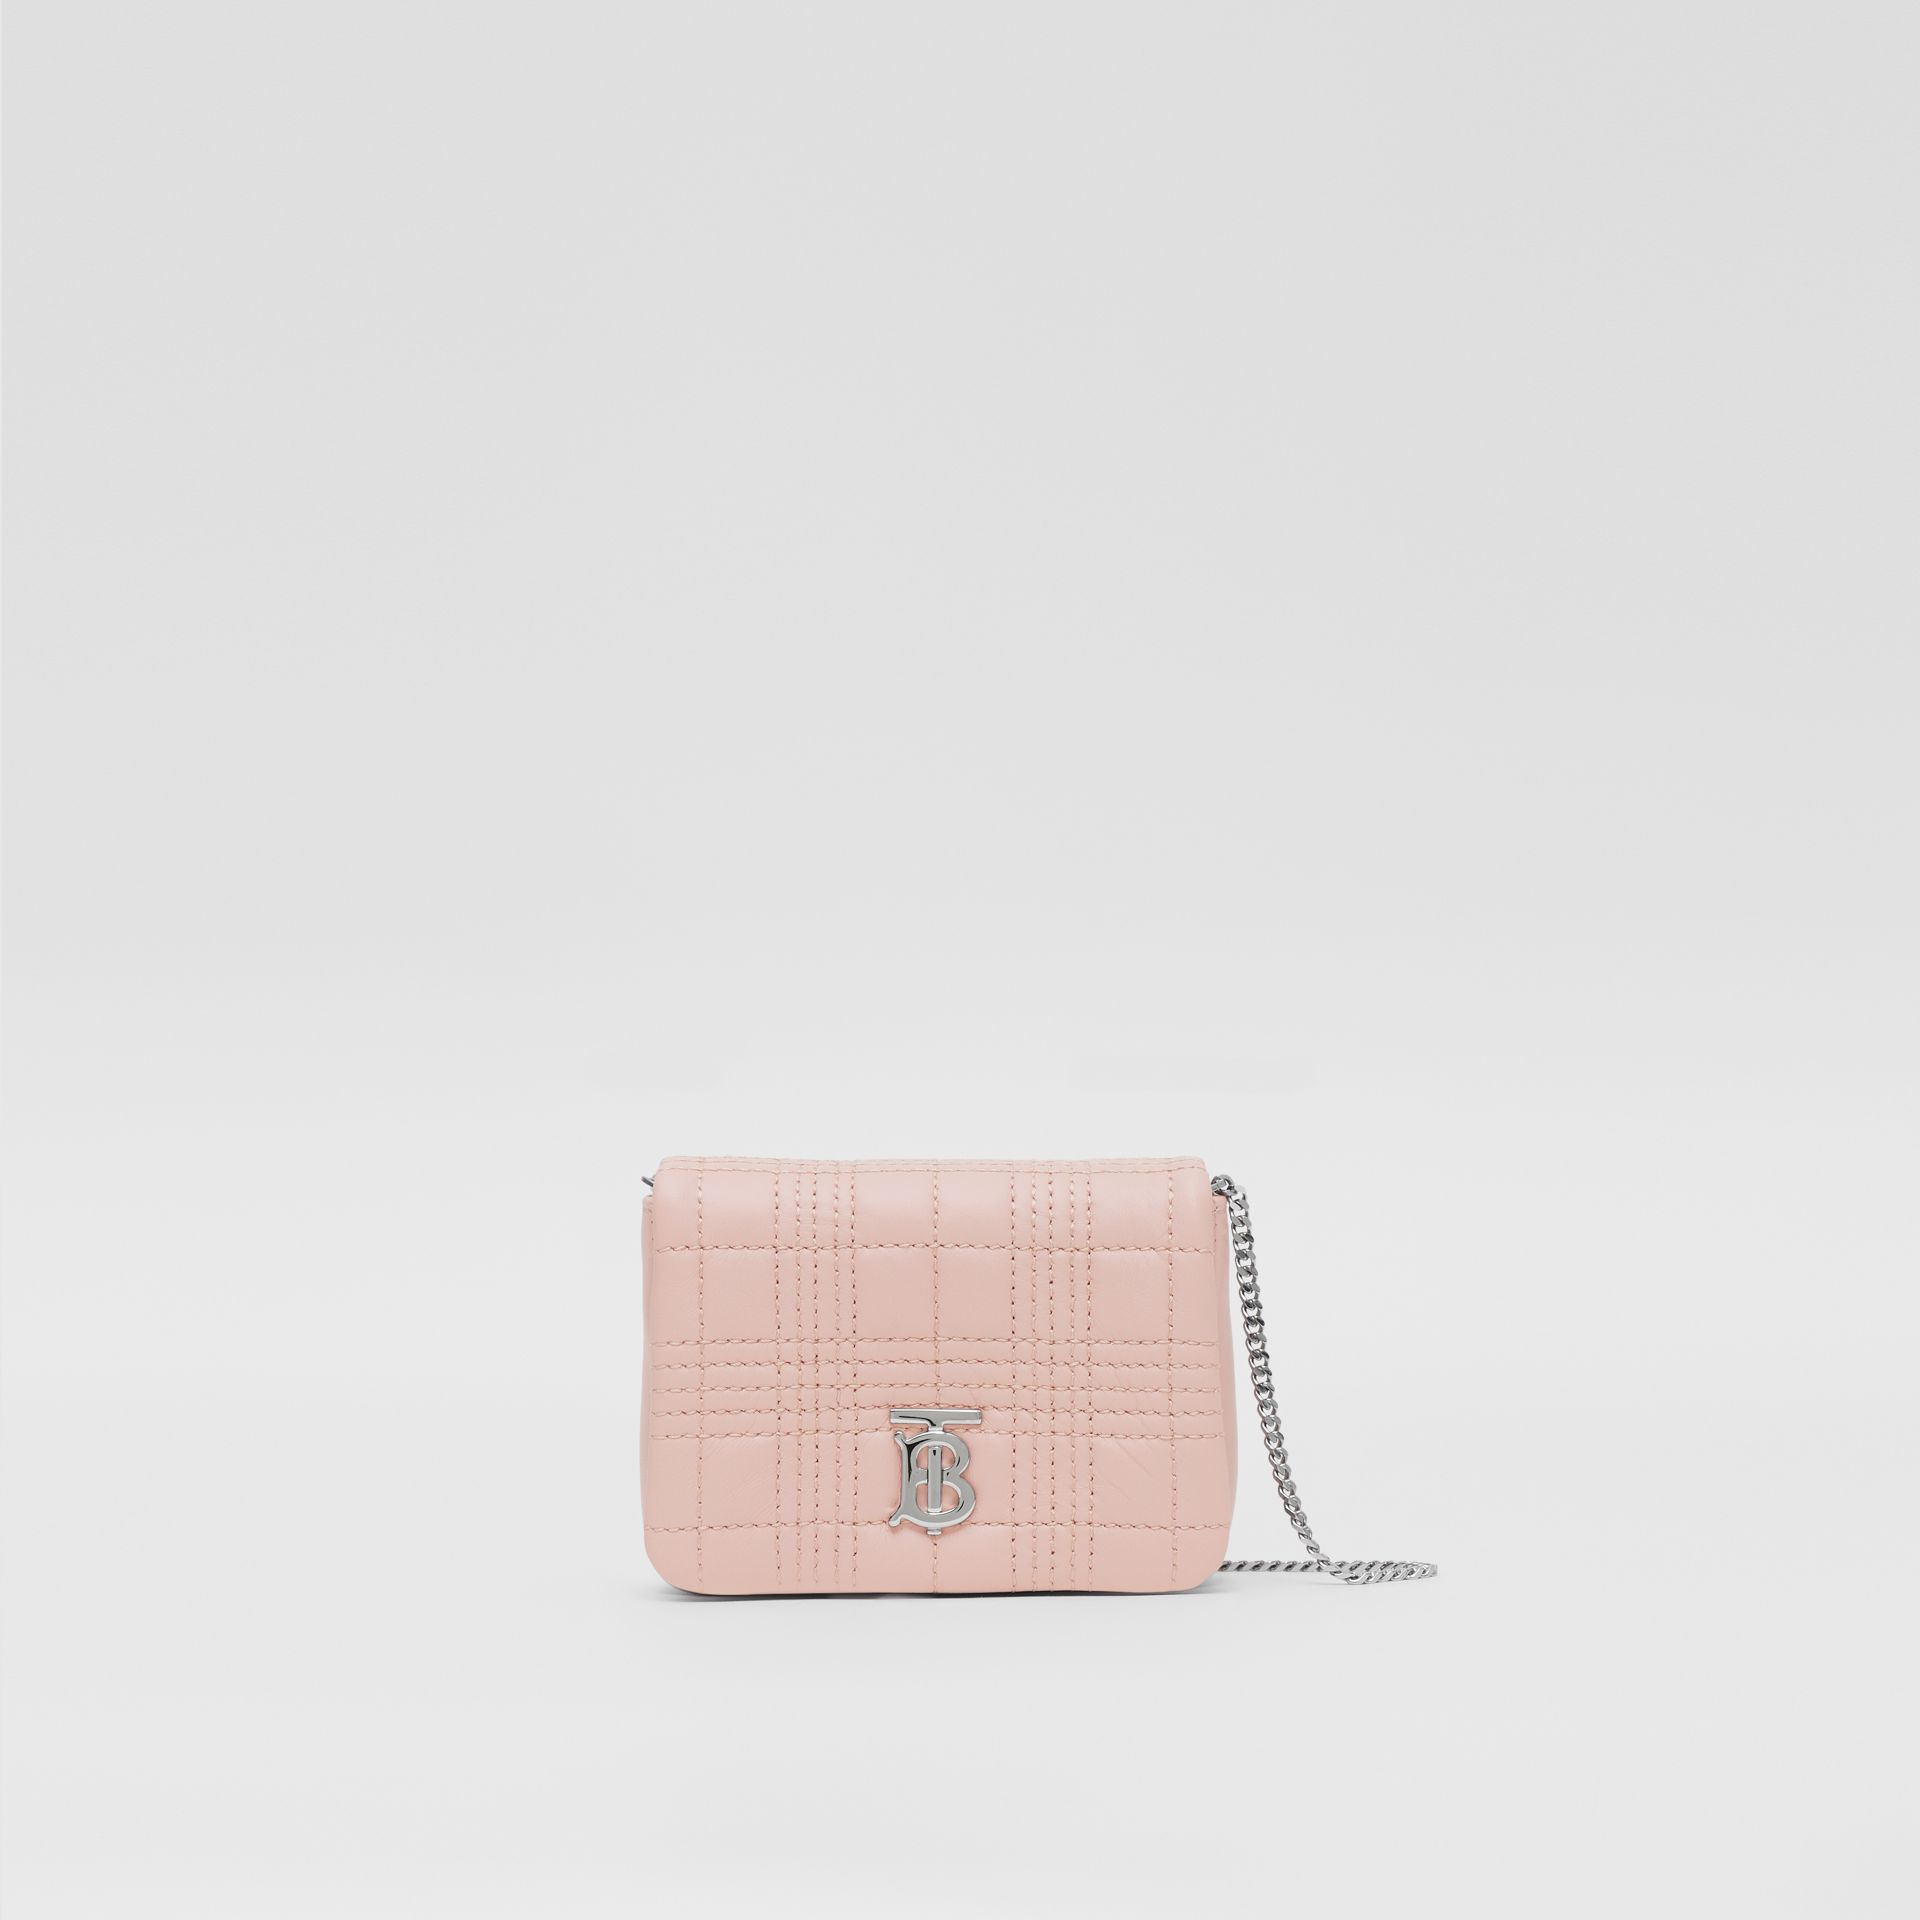 Micro Quilted Lambskin Lola Bag in Blush Pink - Women | Burberry - gallery image 0